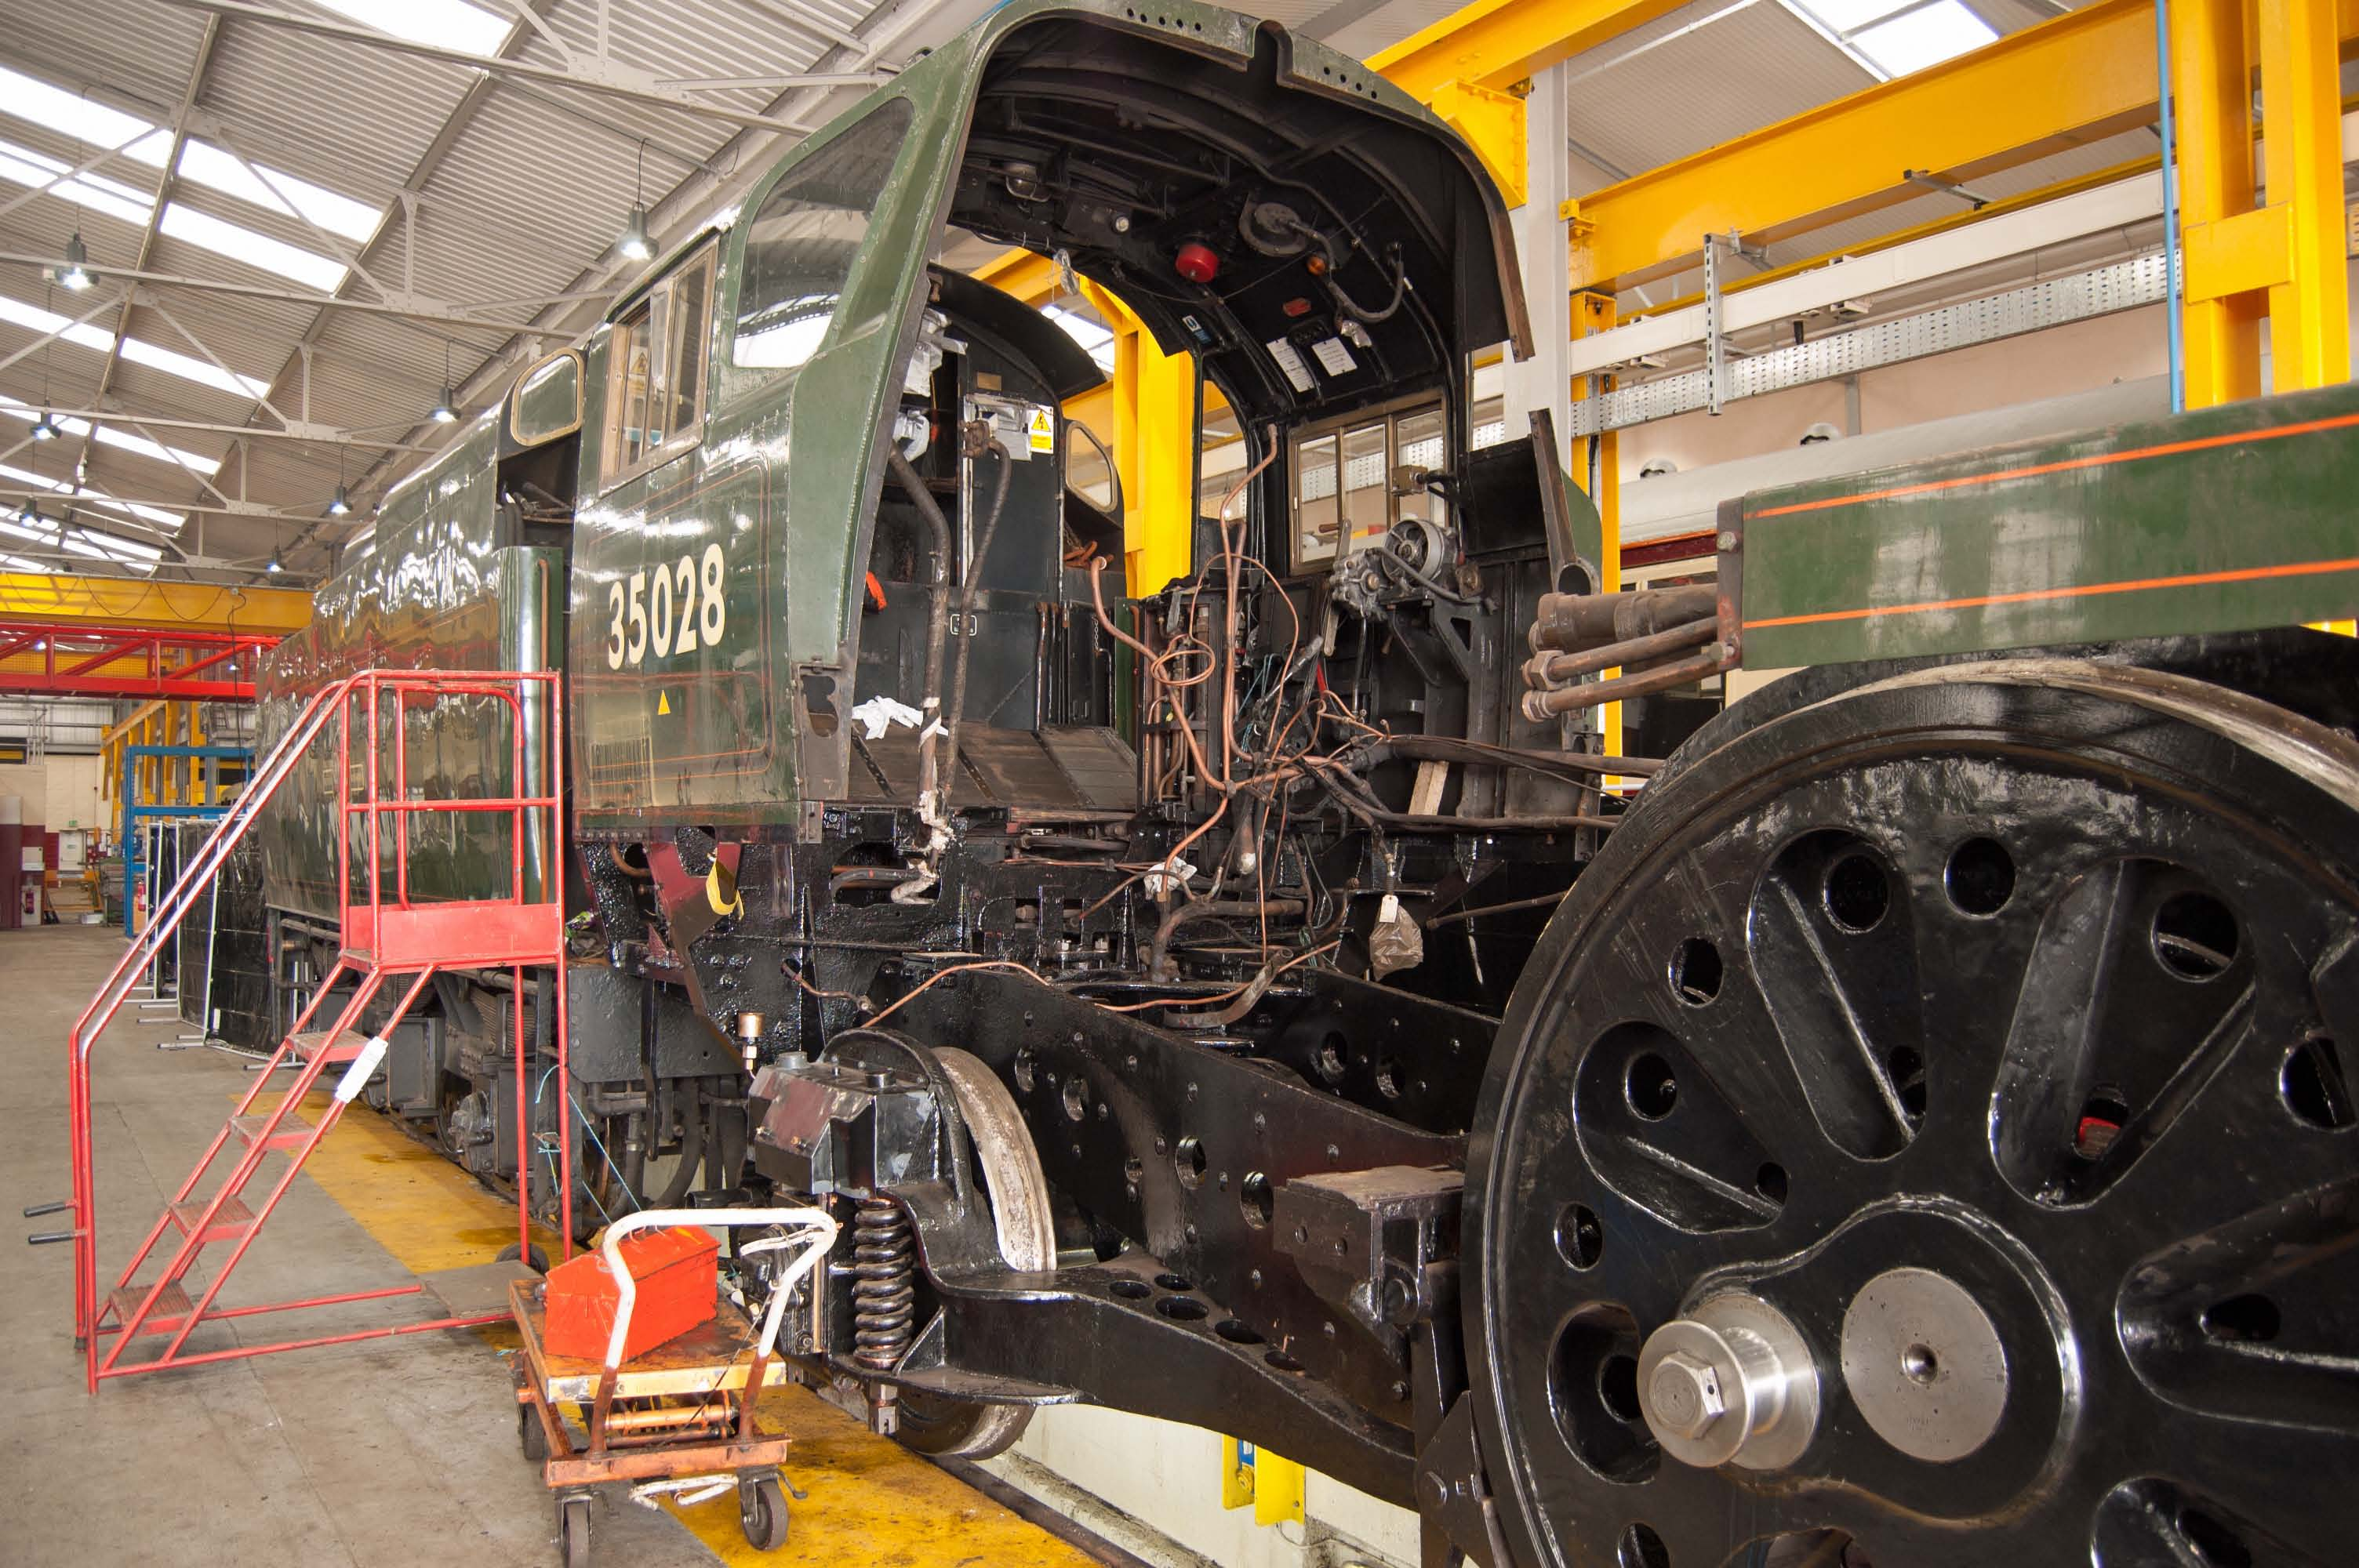 The cab has been temporarily put back so that the valves can be set (the reverser is fixed to the cab side).